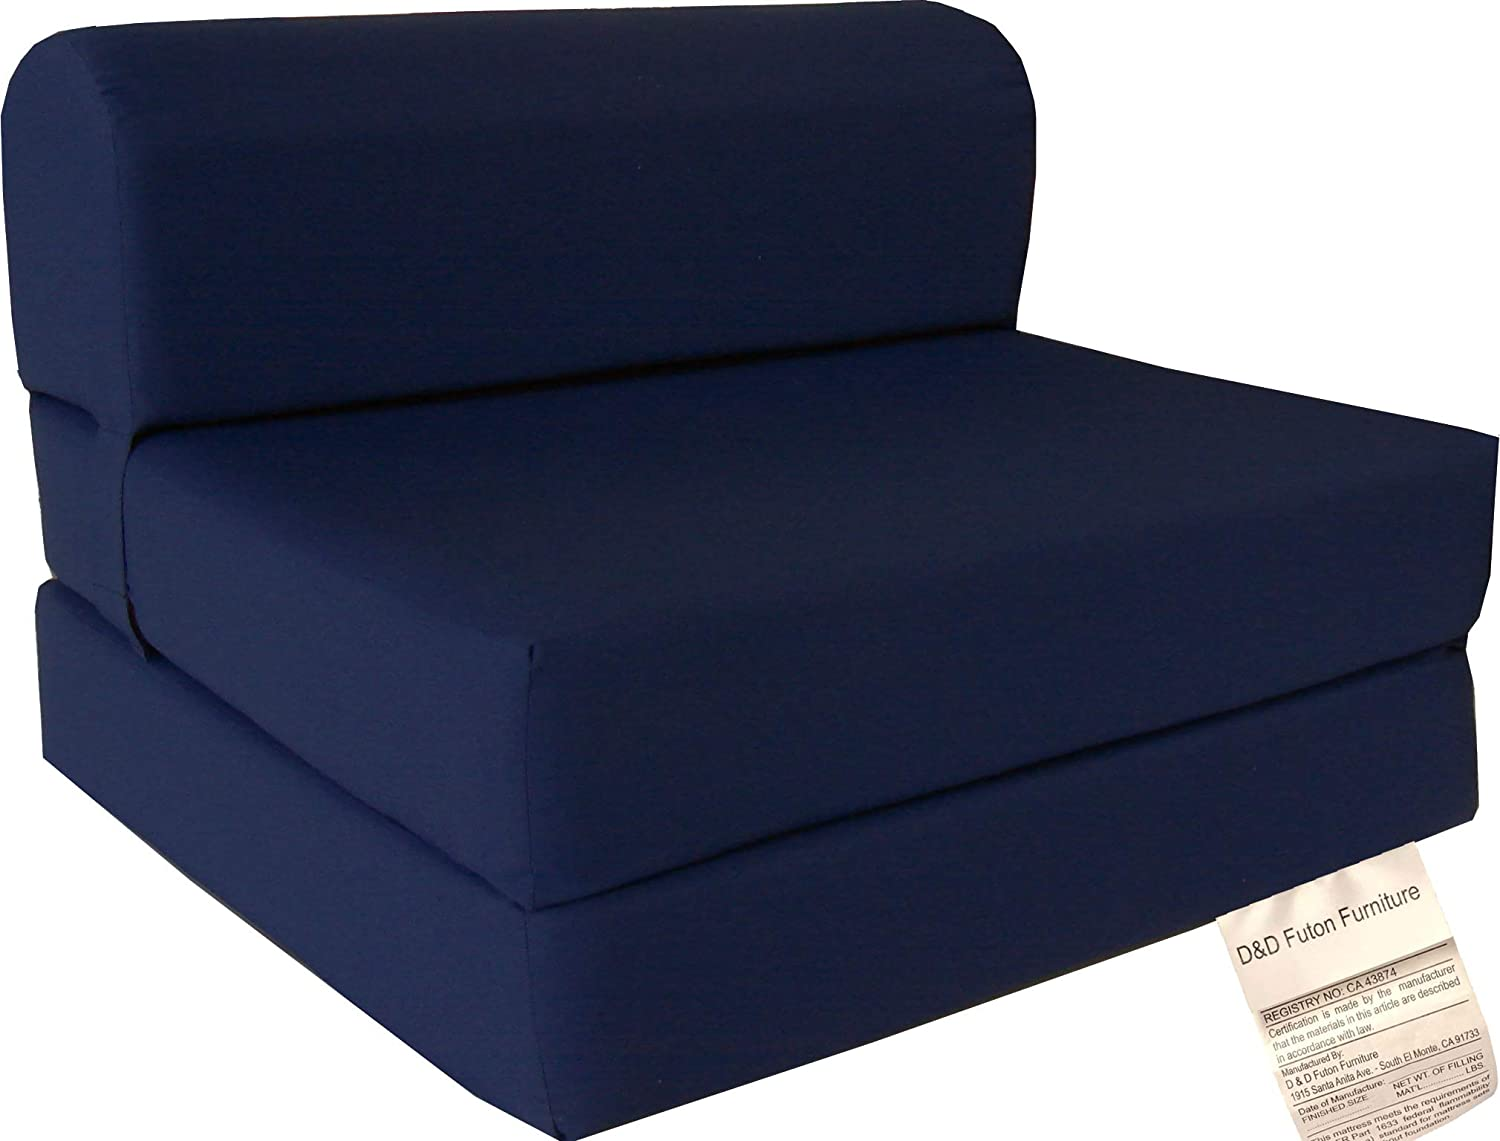 D&D Futon Furniture NavyFB18lb63270